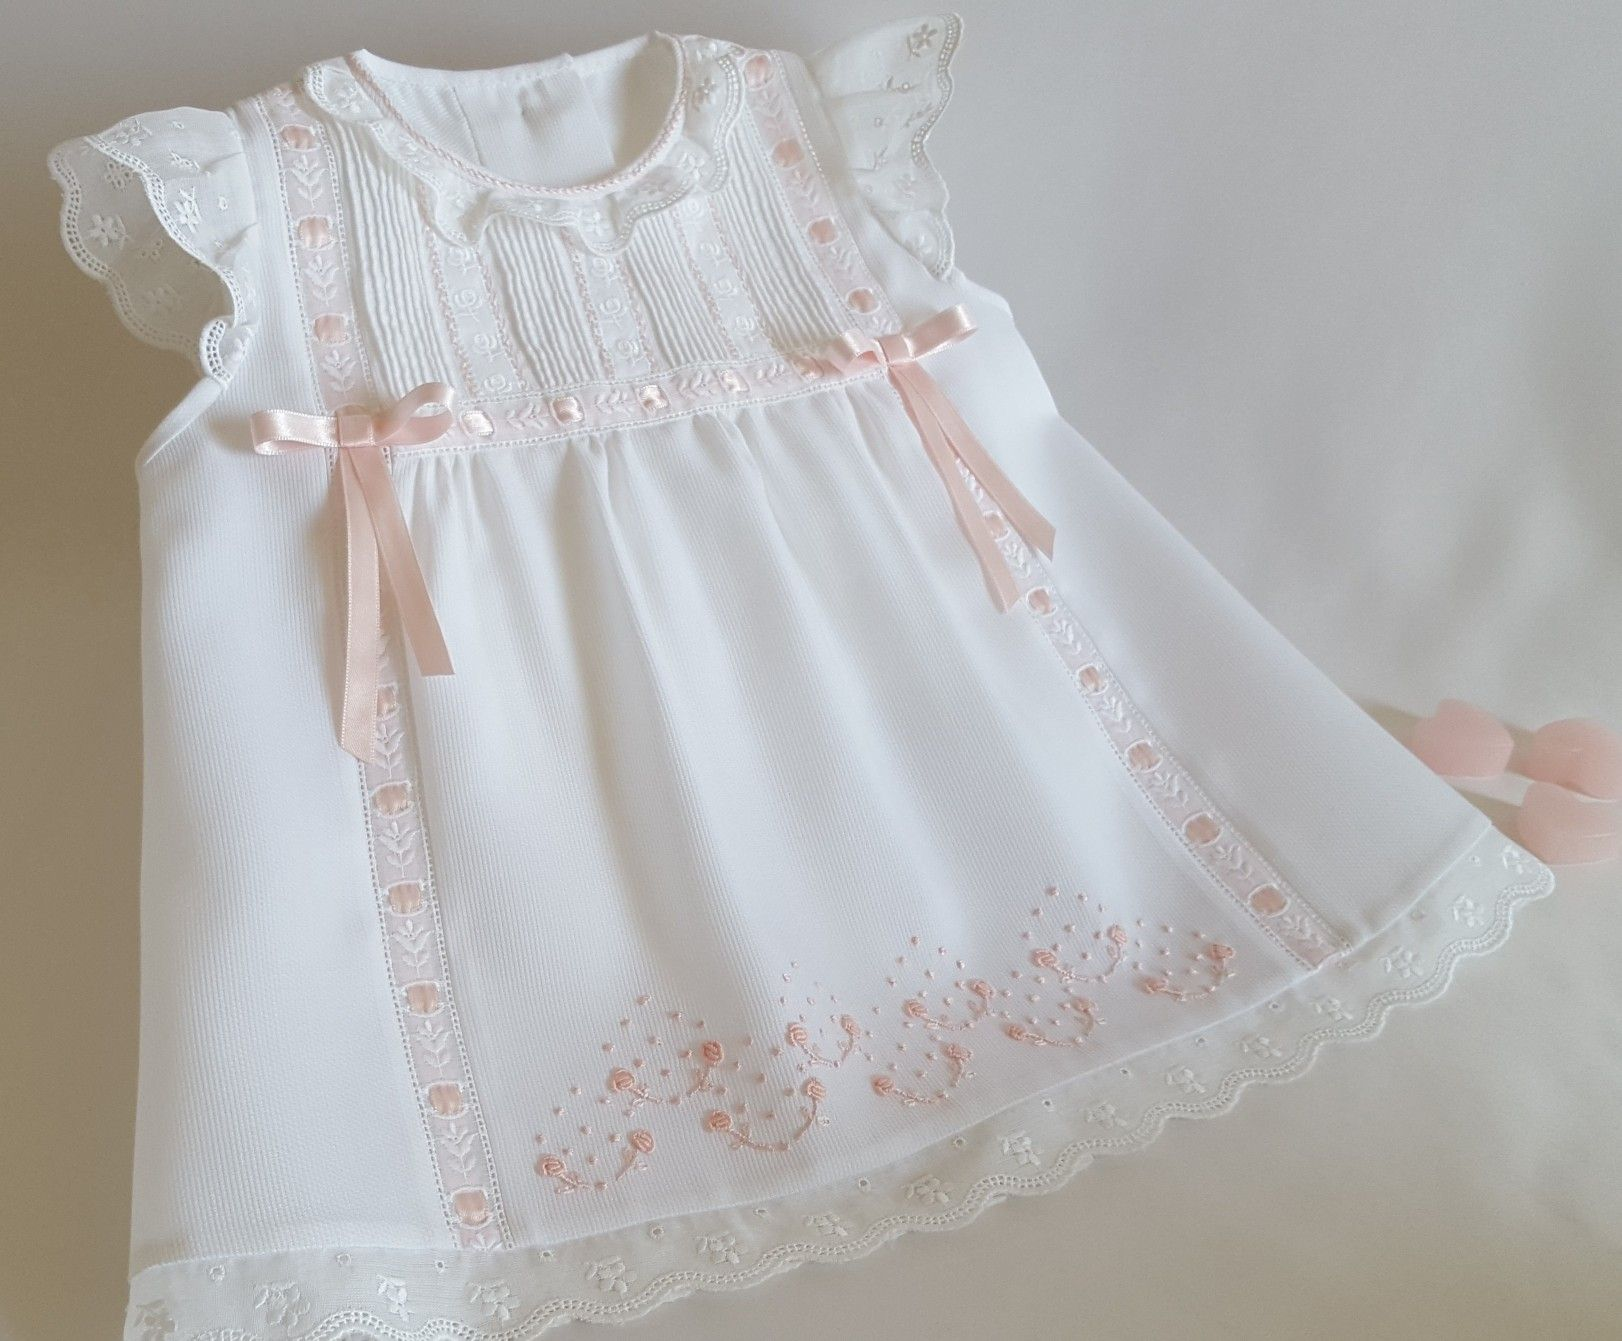 Pin by gladys cartagena on madeira pinterest baby kids outfits